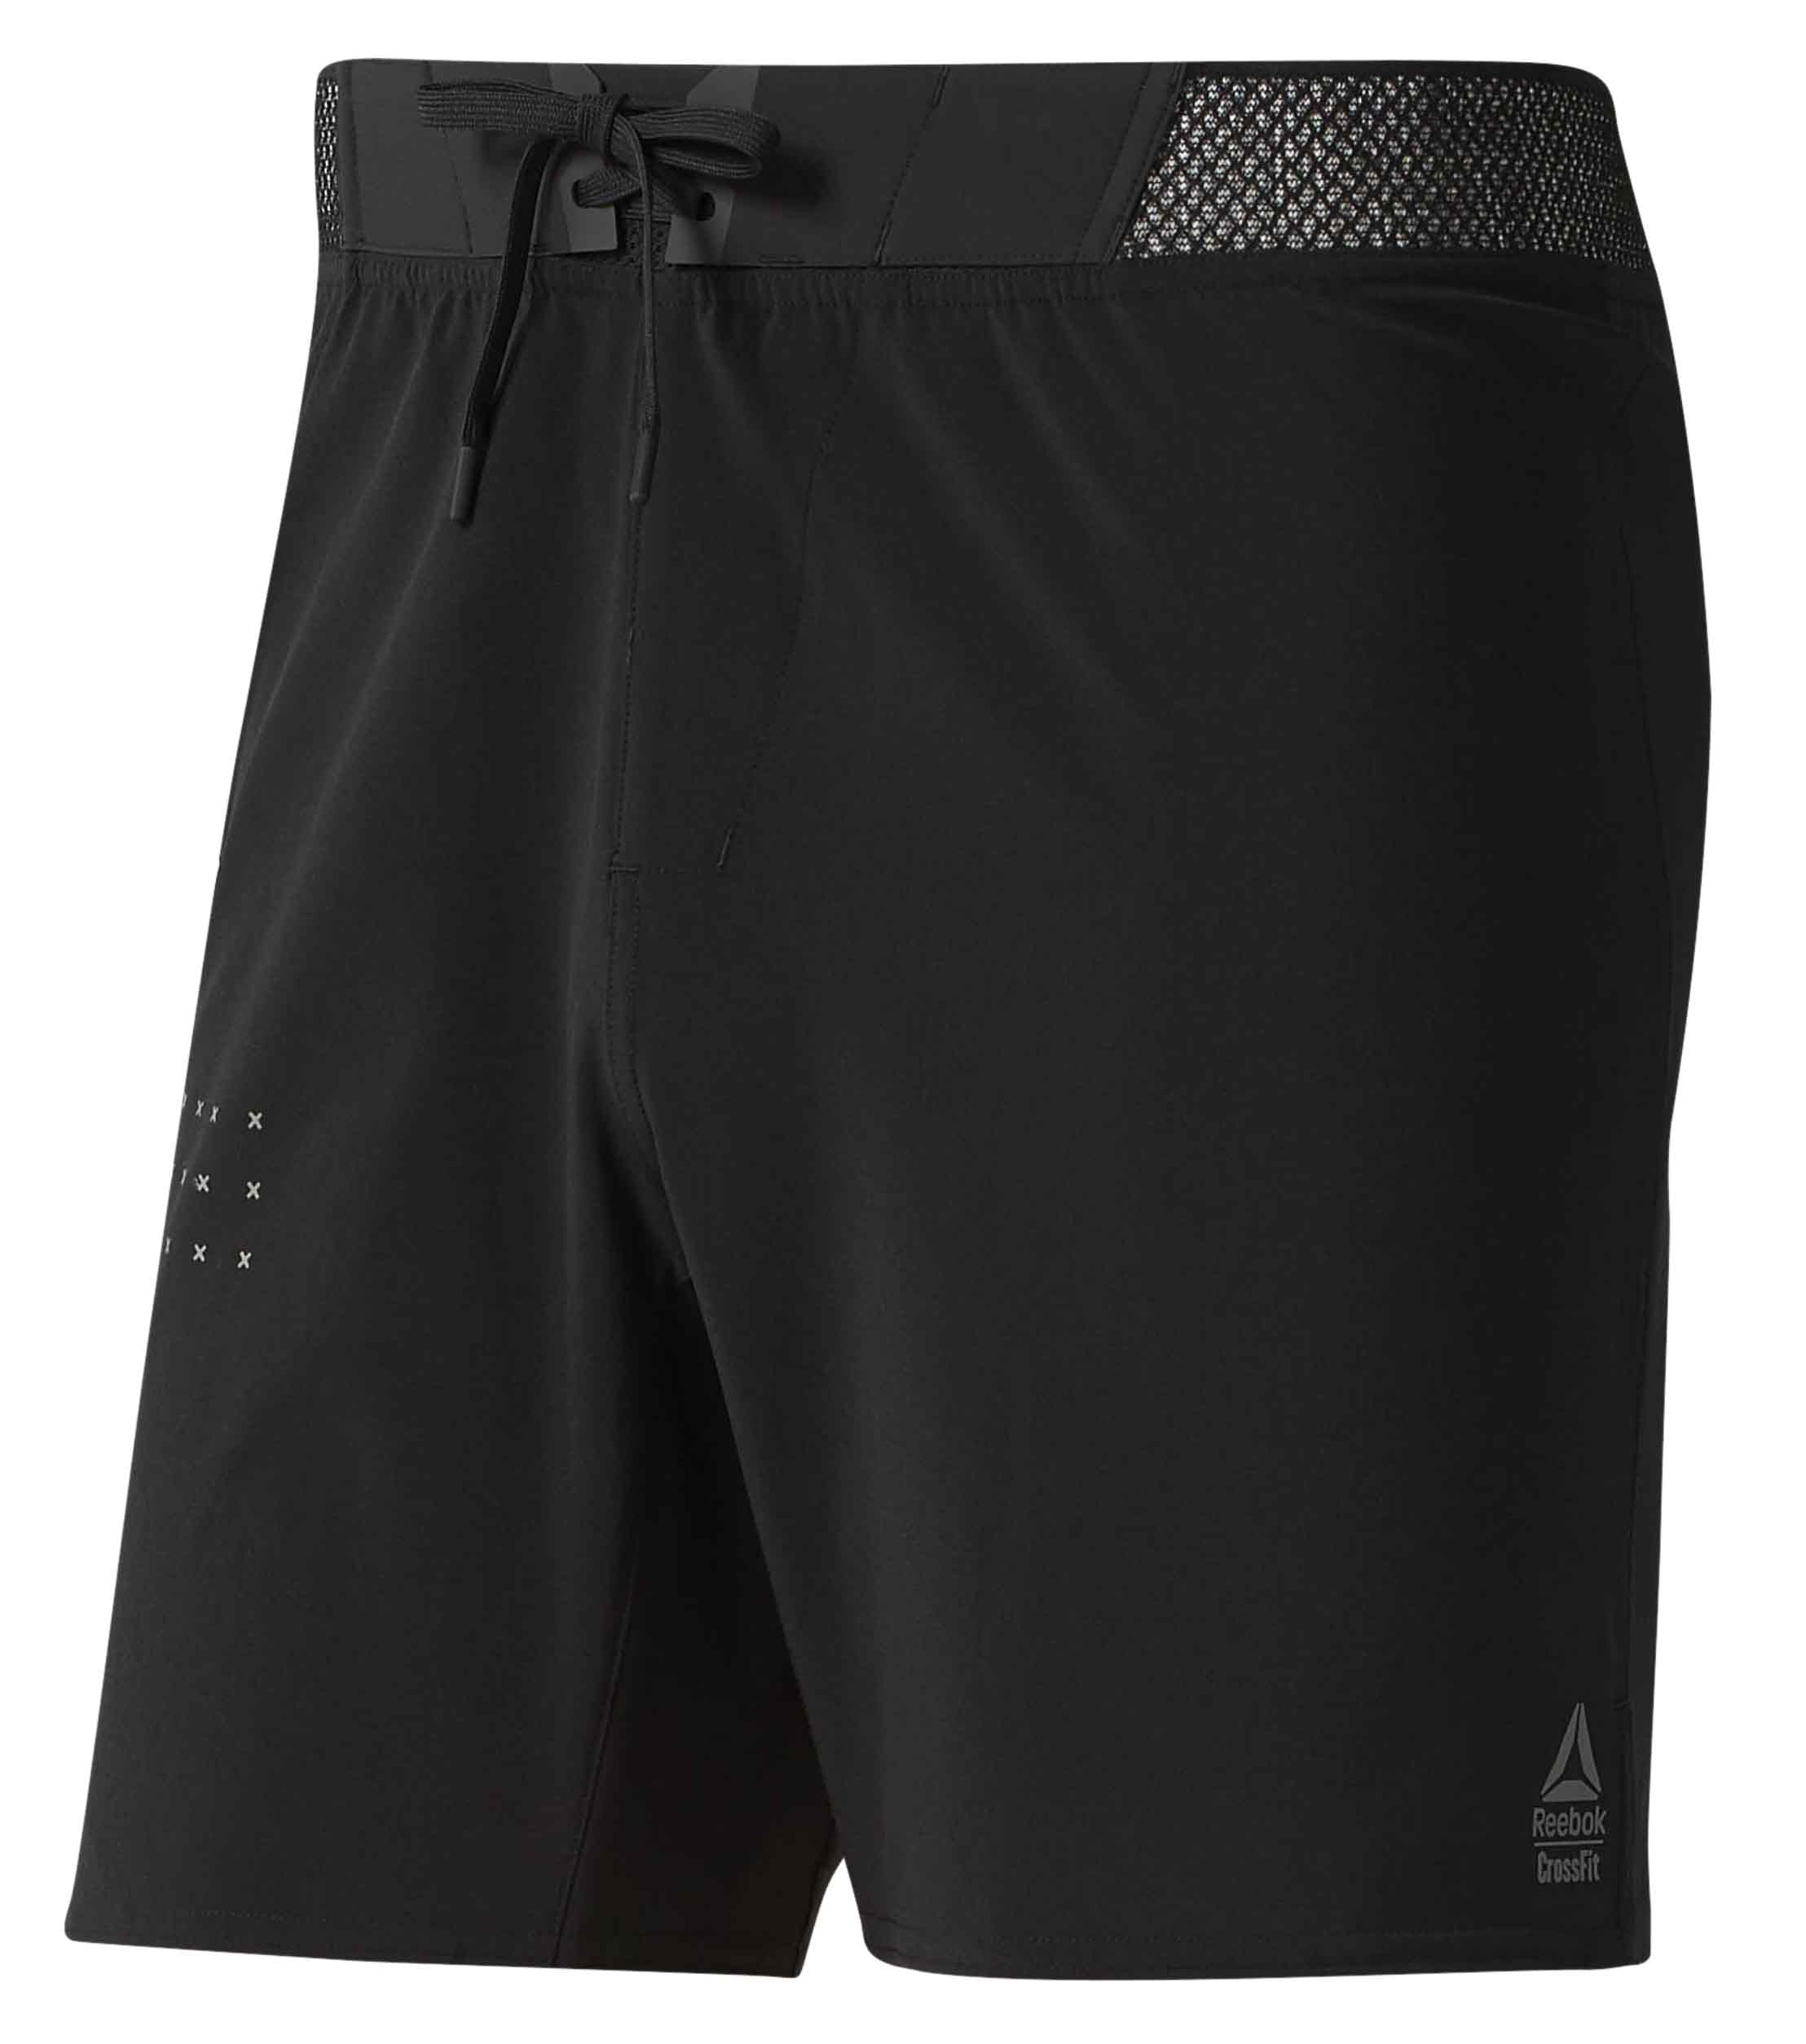 crossfit-shorts-shortest